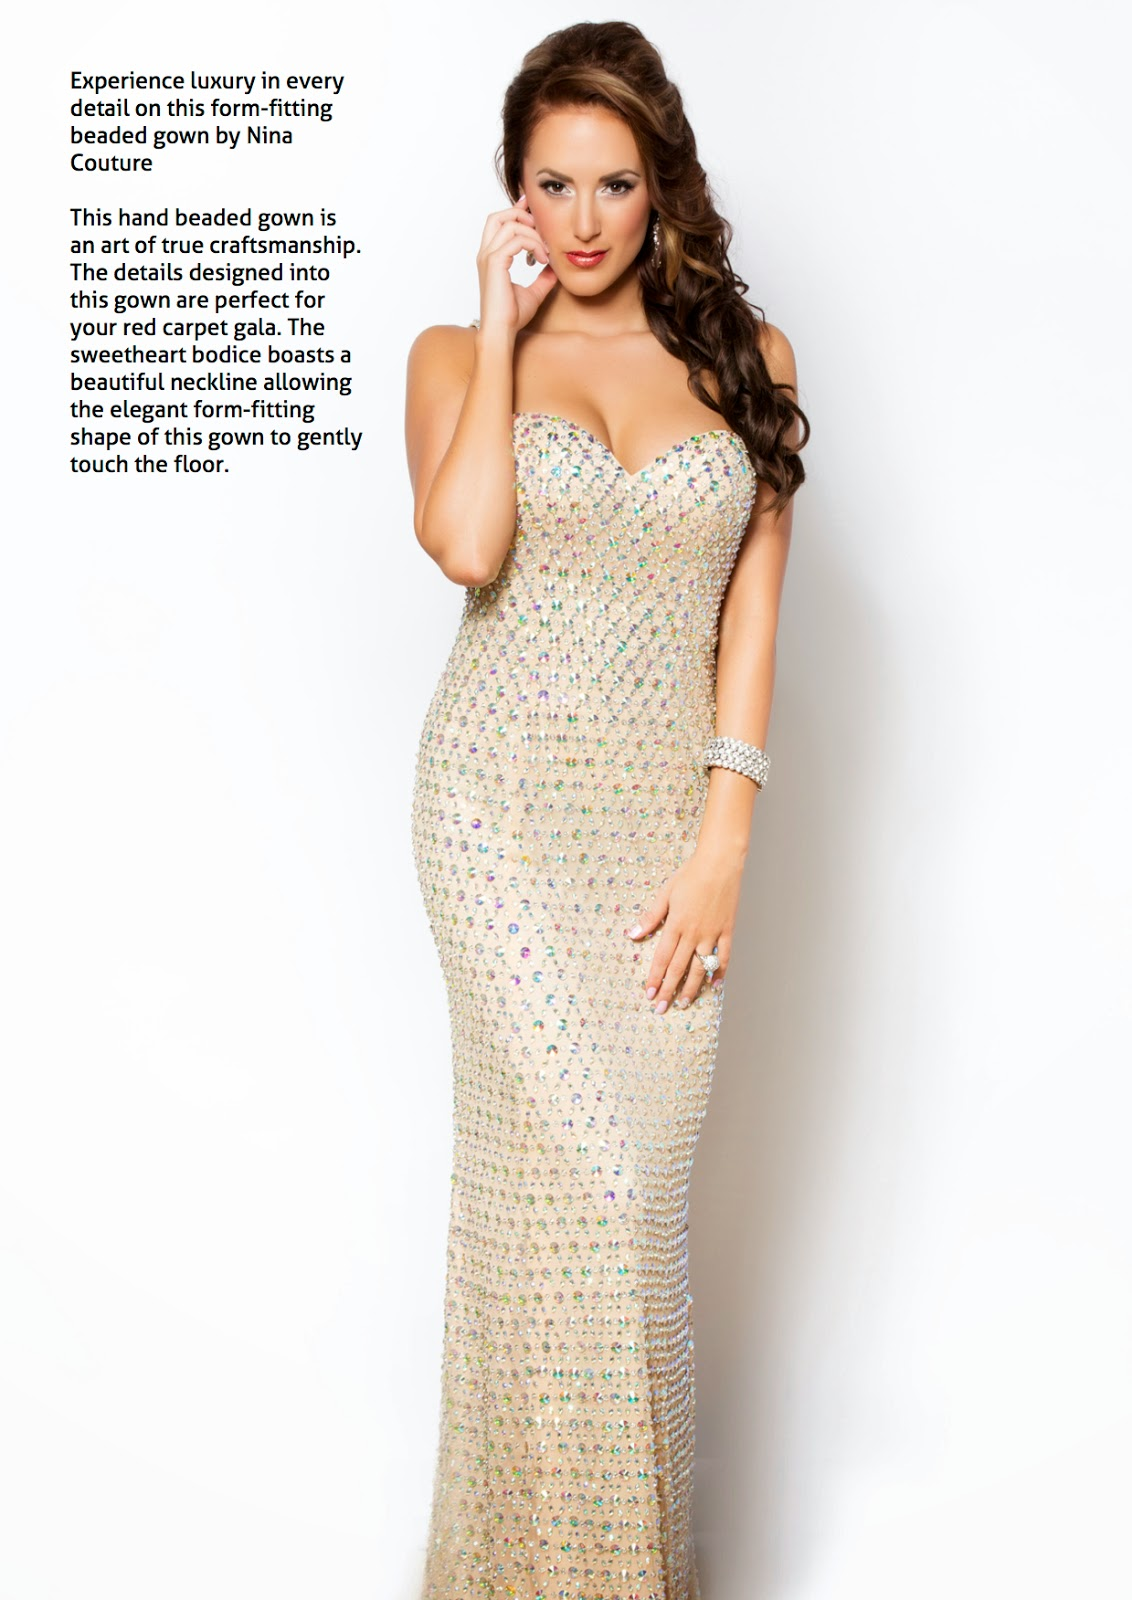 NINA COUTURE Luxury Fashion Dresses for Prom Wedding and